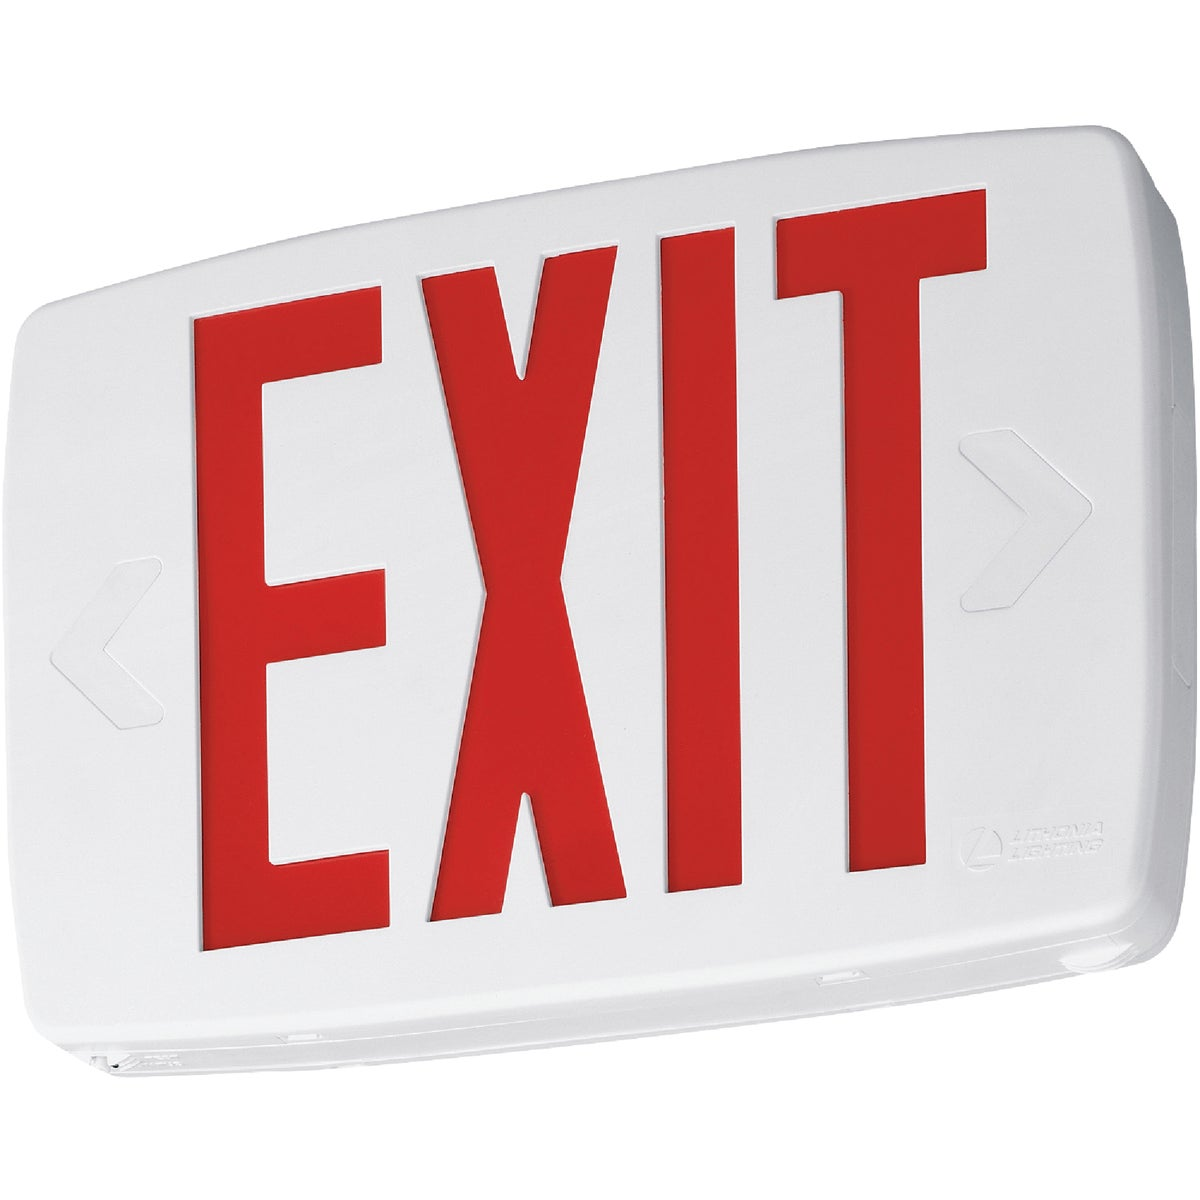 RED EXIT LIGHT